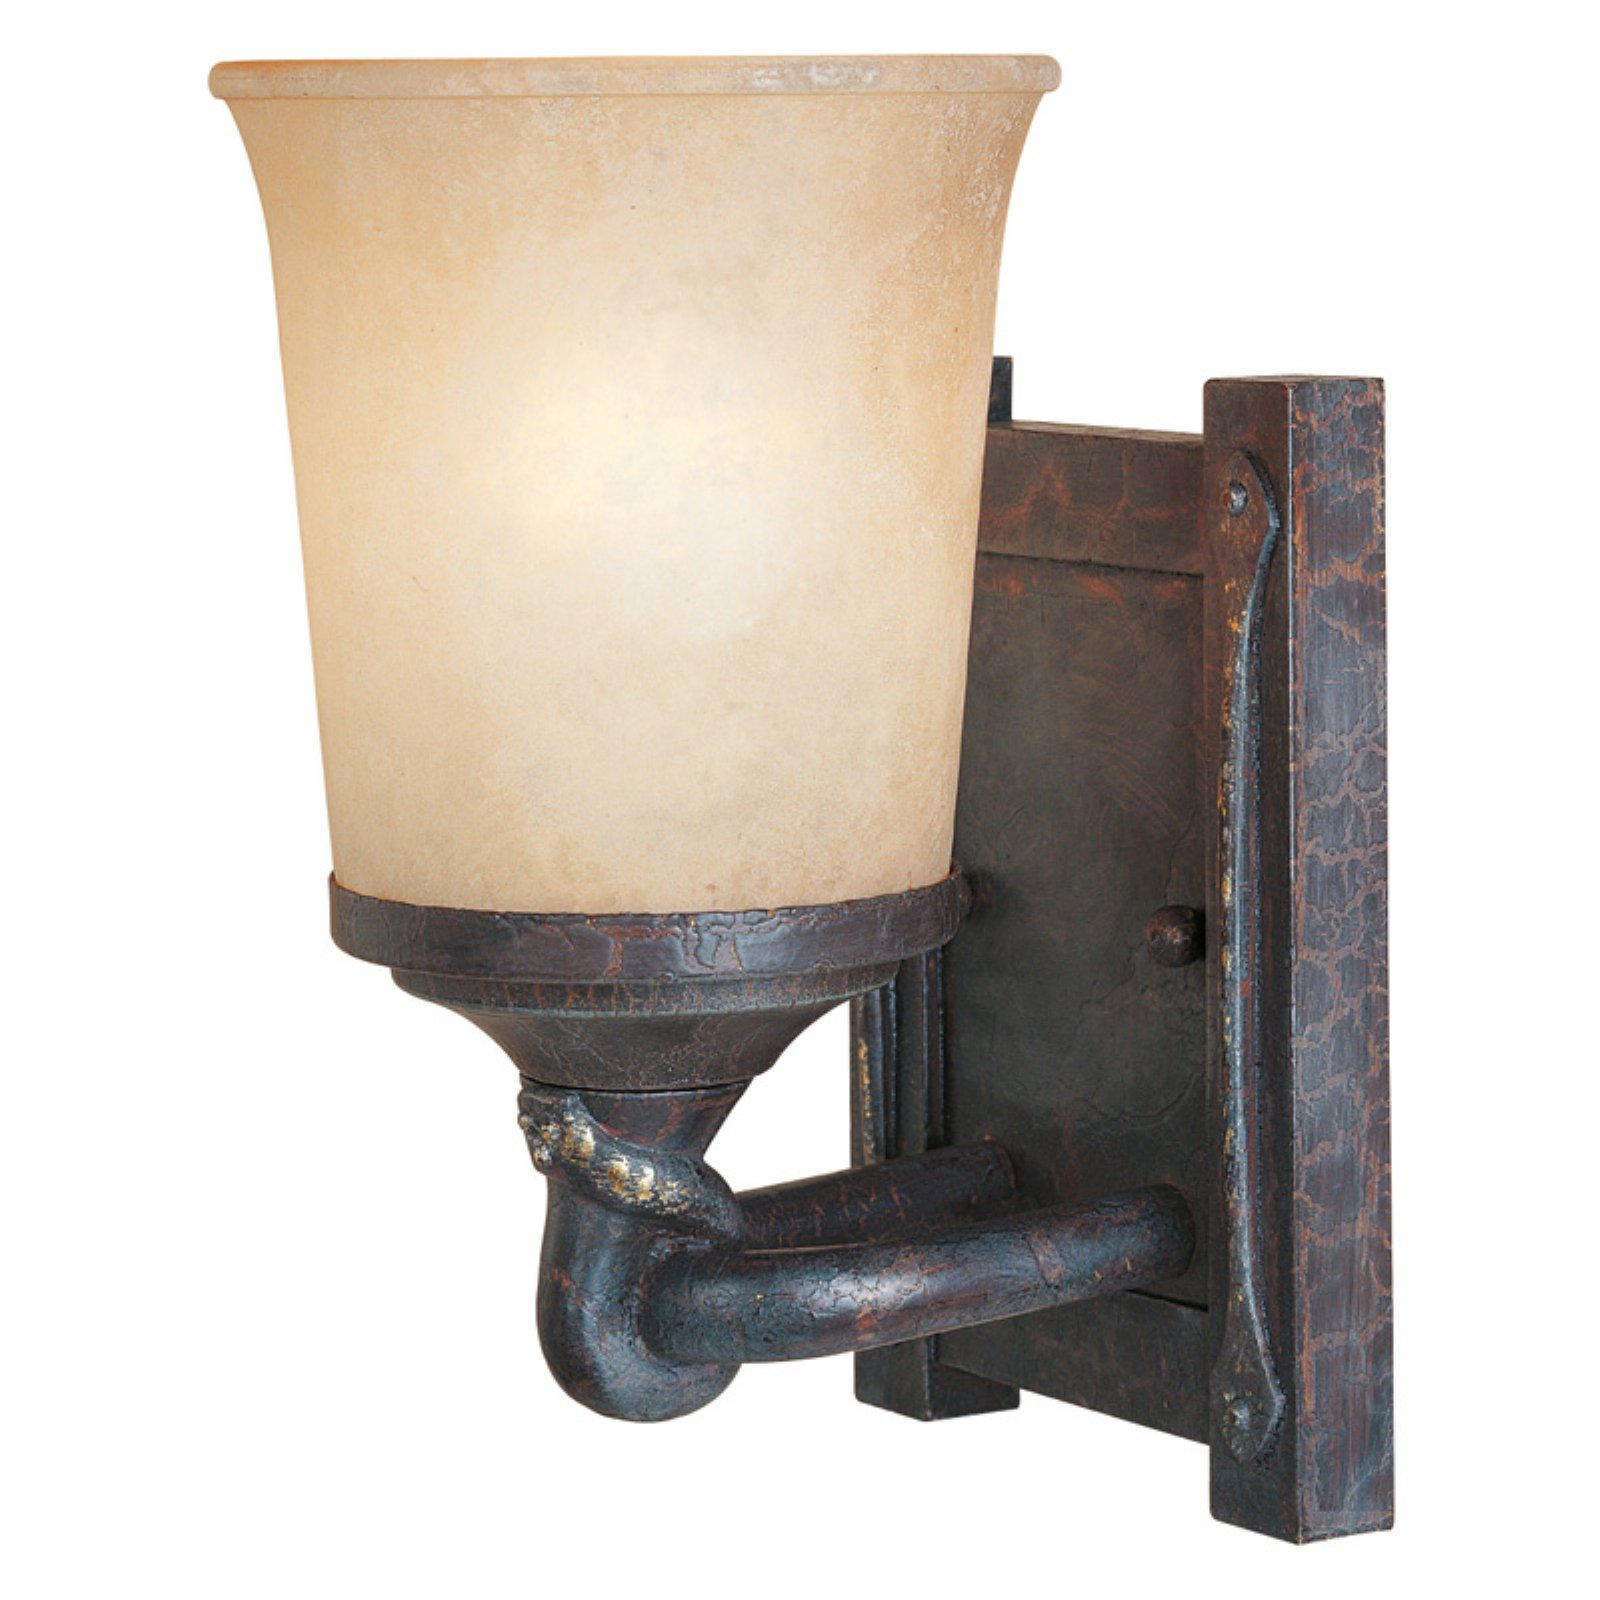 Designers Fountain 97301 Austin Wall Sconce in Weathered Saddle Finish